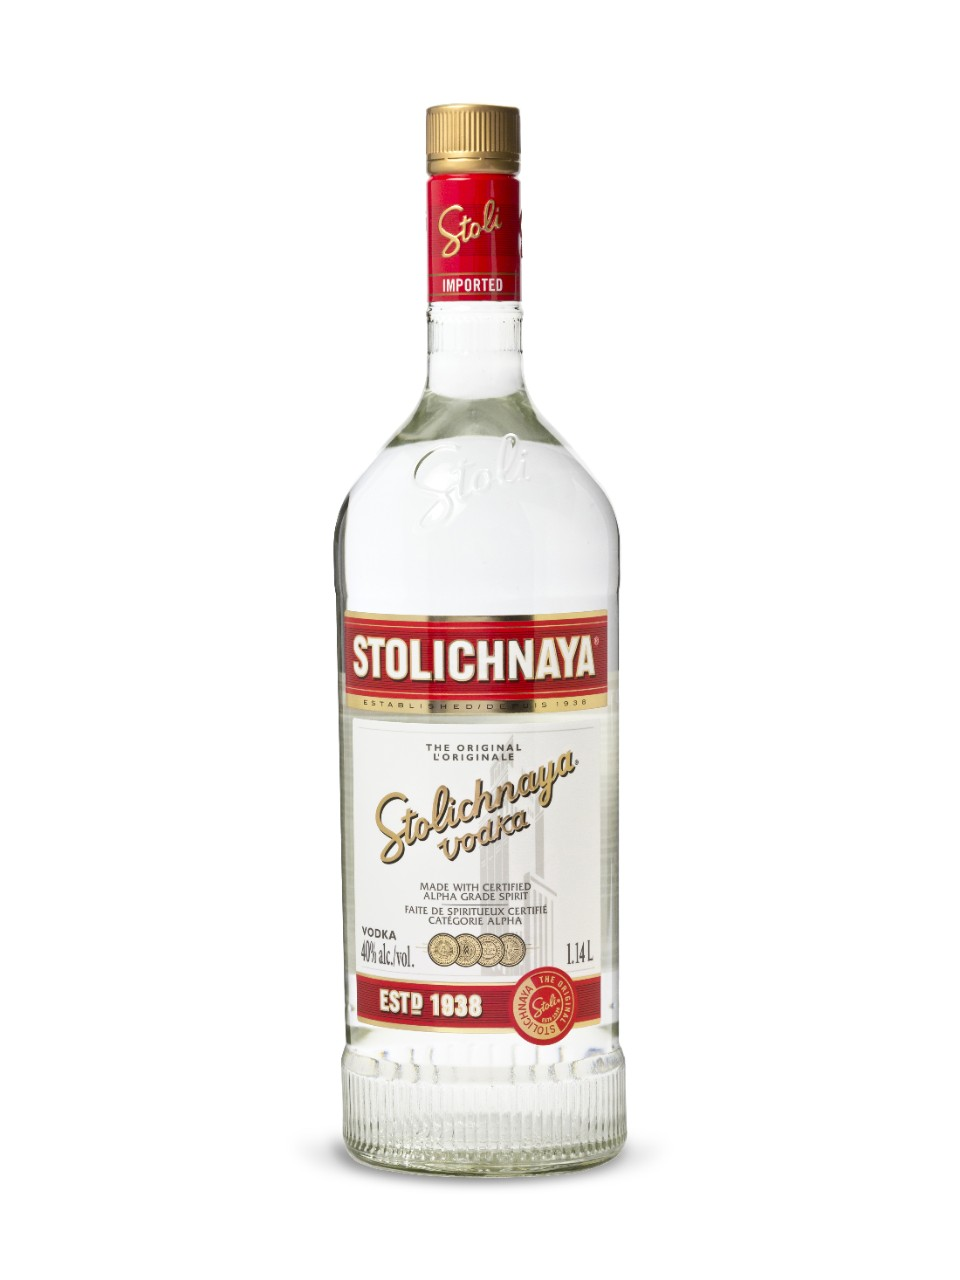 Stolichnaya Vodka from LCBO